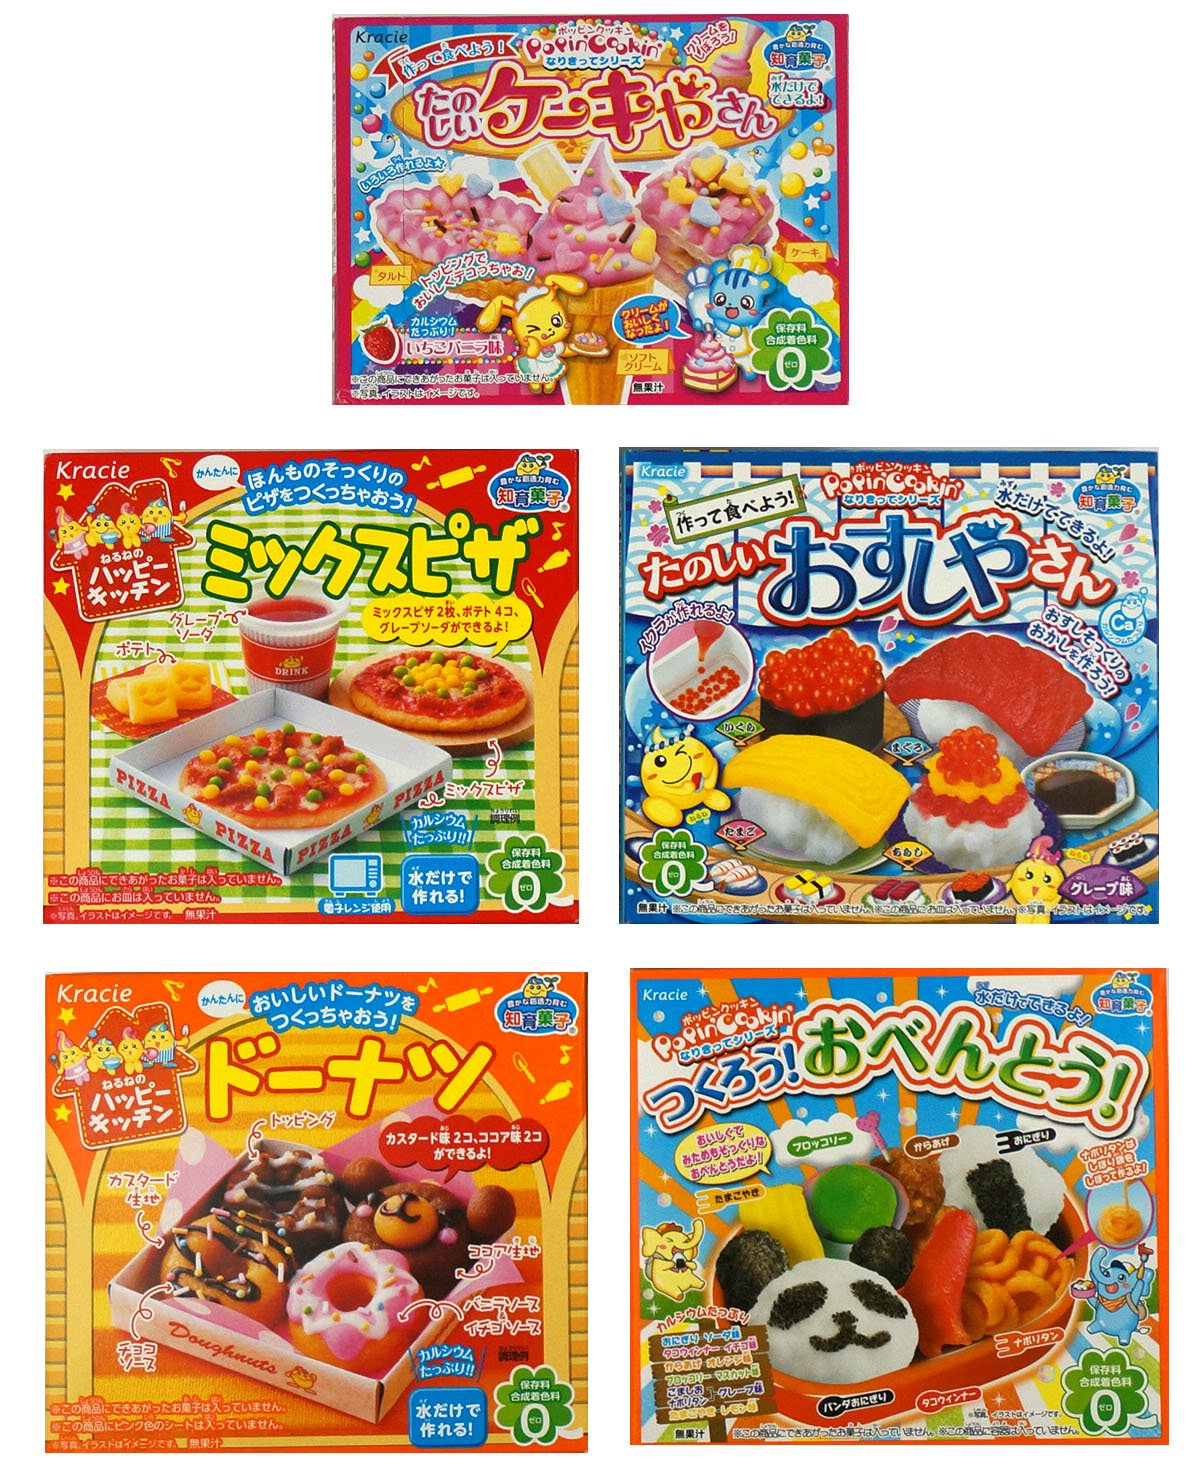 Popin cookin amazon - Amazon Com Assortment Of 5 Kracie Popin Cookin Happy Kitchen Kits 5 Packs Of Japanese Educational Confectionery